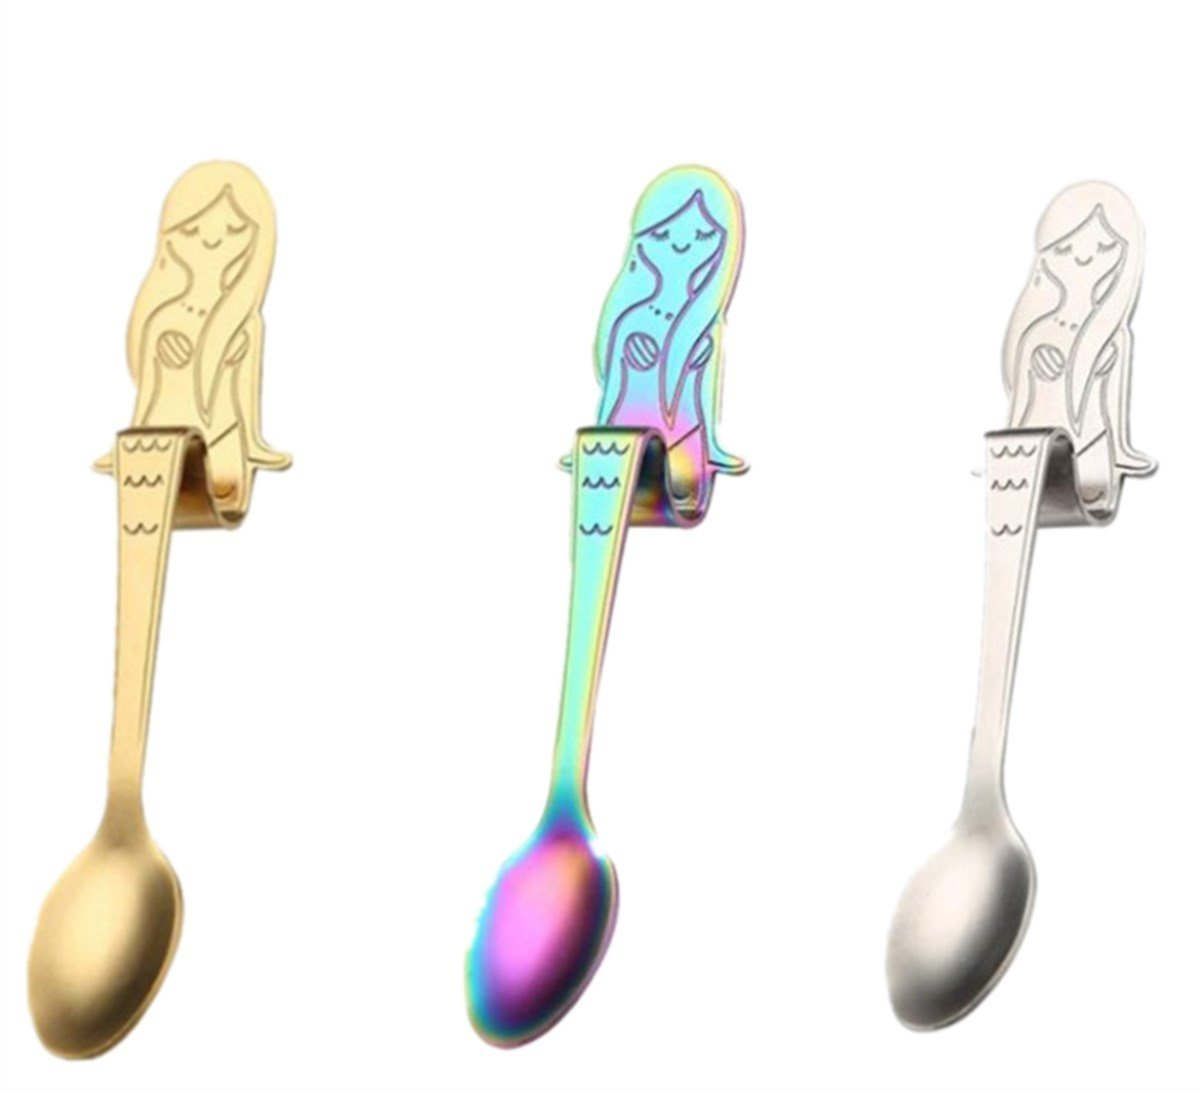 Coffee Scoop Colorful 3 Pcs Mermaid Spoon Hook Design Scoop with Thickening Handle Silver Colorful Gold MENG ZHI AO